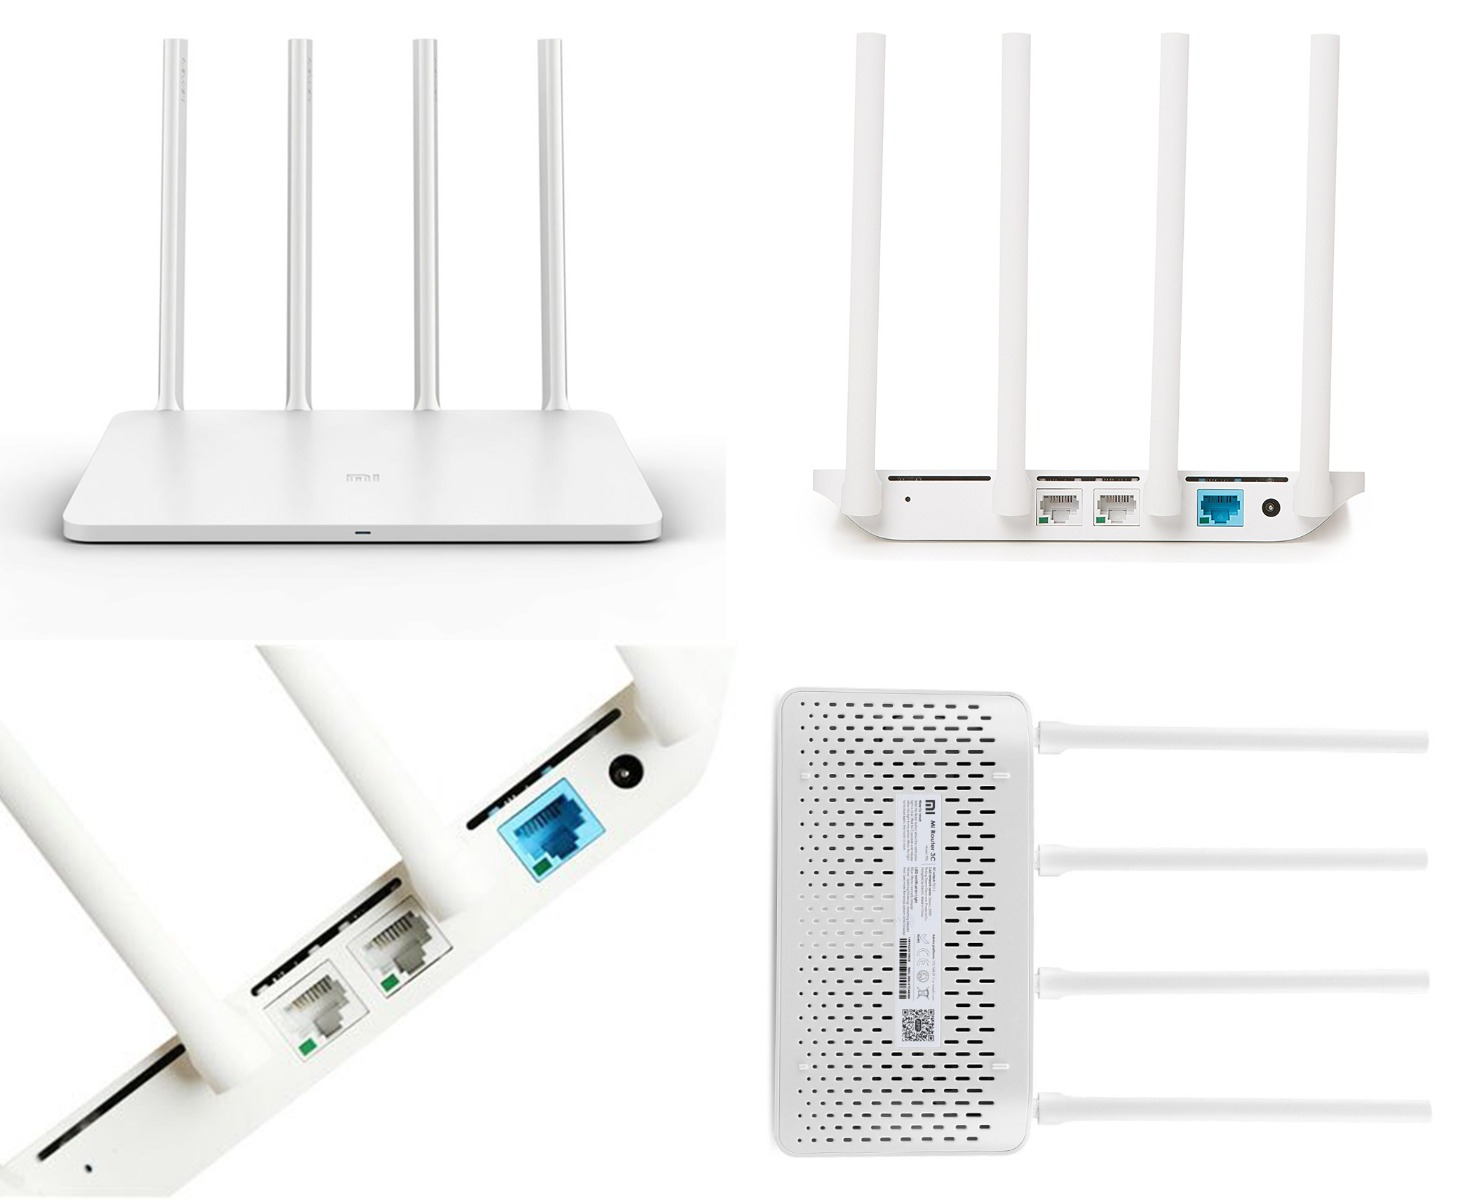 Xiaomi Mi Router 3c The Most Powerful Four Antennas Wifi